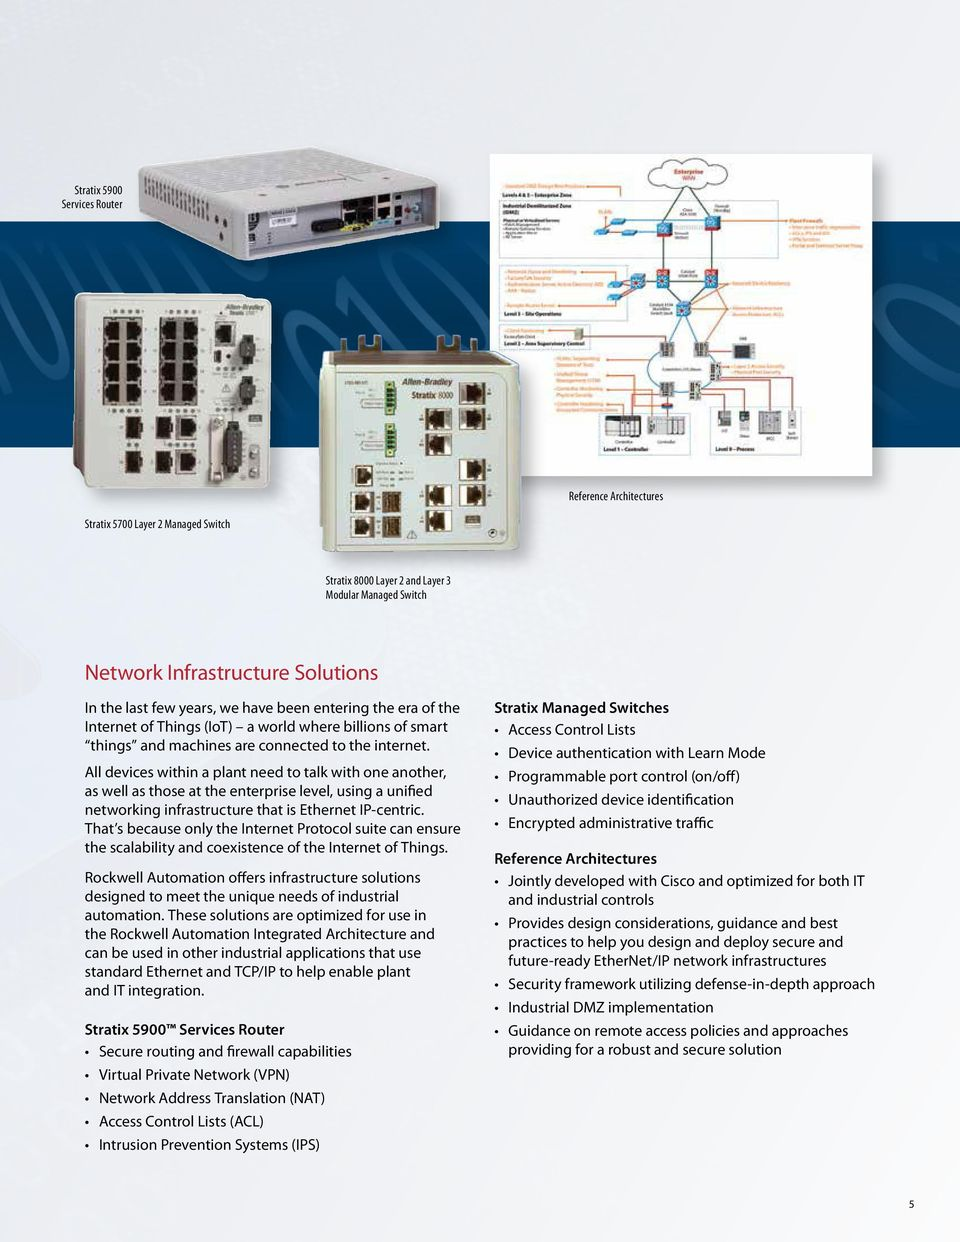 All devices within a plant need to talk with one another, as well as those at the enterprise level, using a unified networking infrastructure that is Ethernet IP-centric.